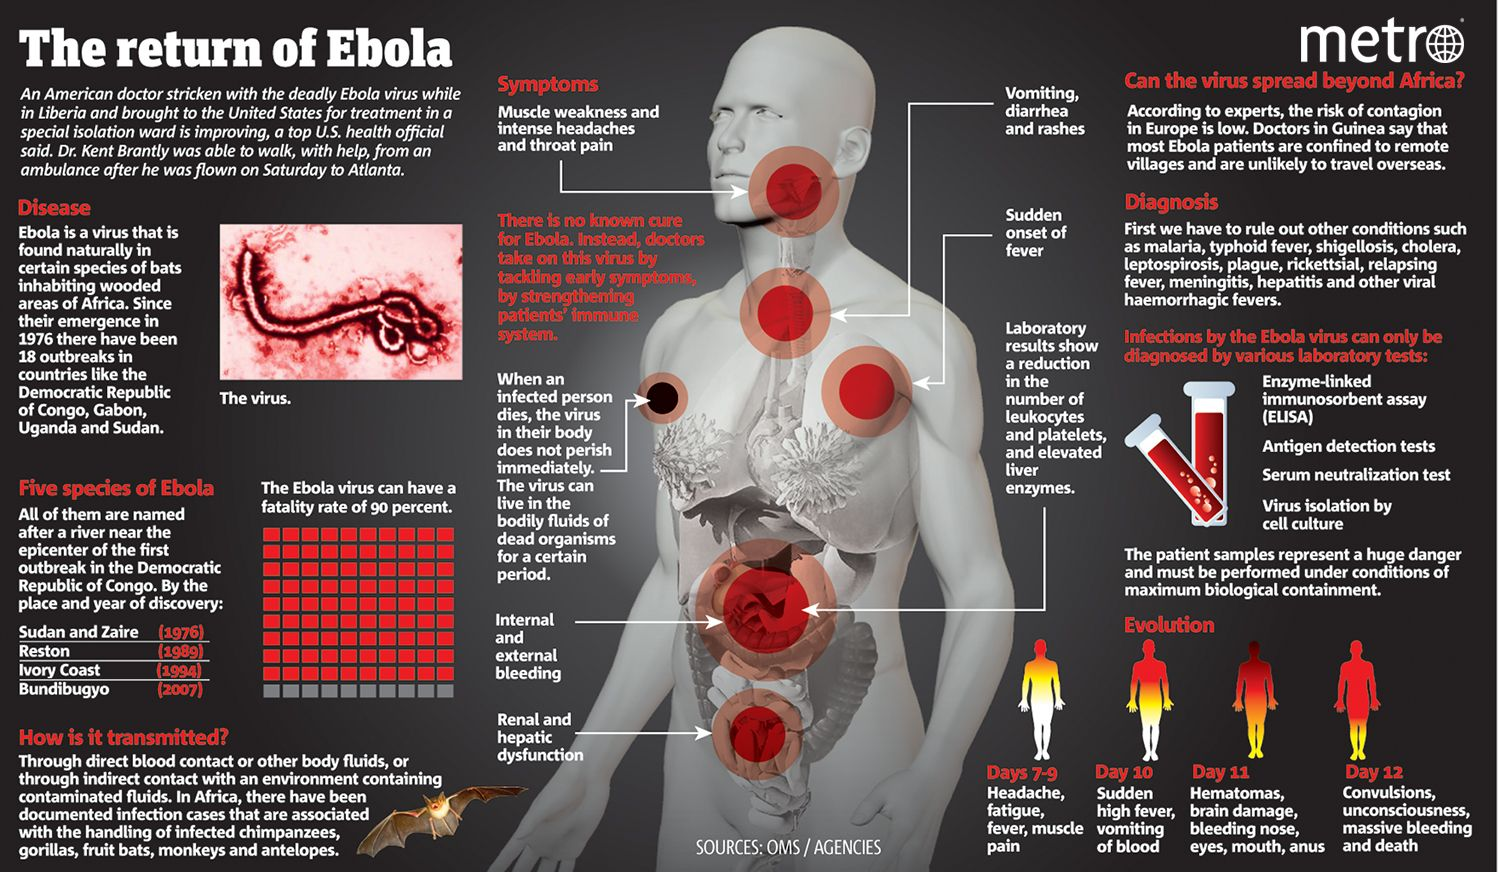 Sharing This Informative Ebola Chart From Metro